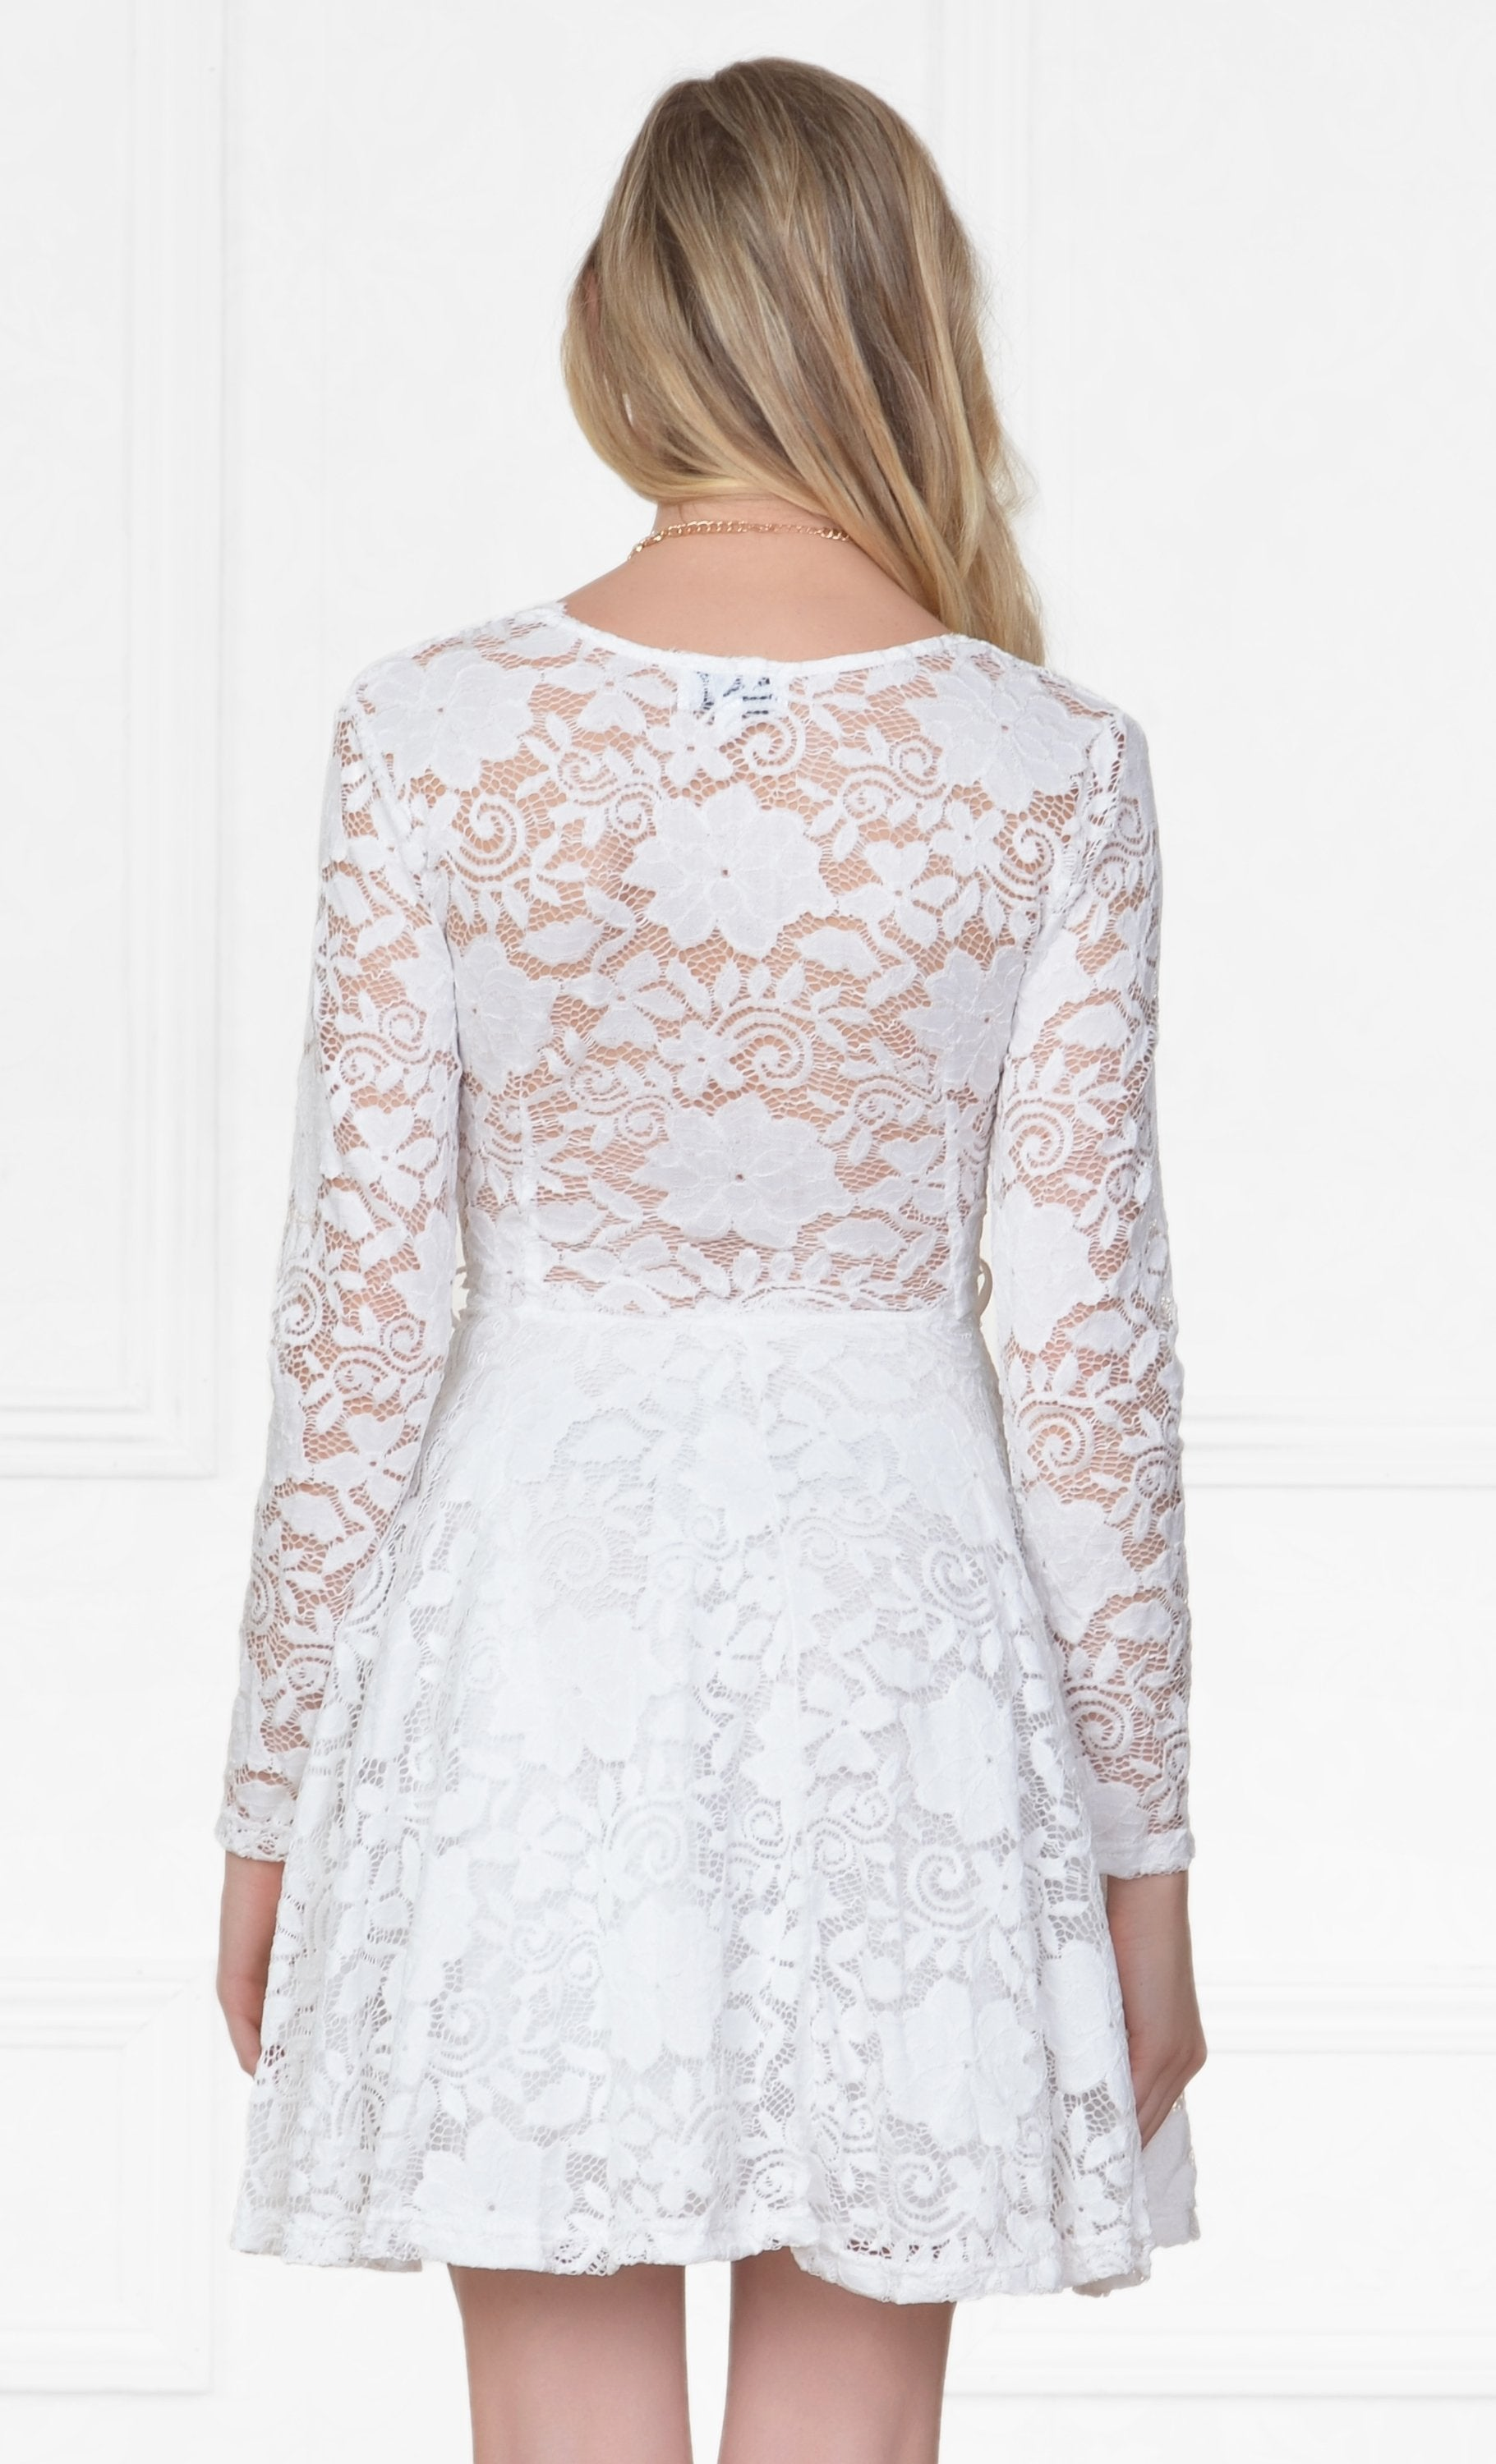 Indie XO Flirty Encounter White Lace Long Sleeve V-Neck Skater Circle A Line Flared Skirt Mini Dress - Just Ours! - Sold Out